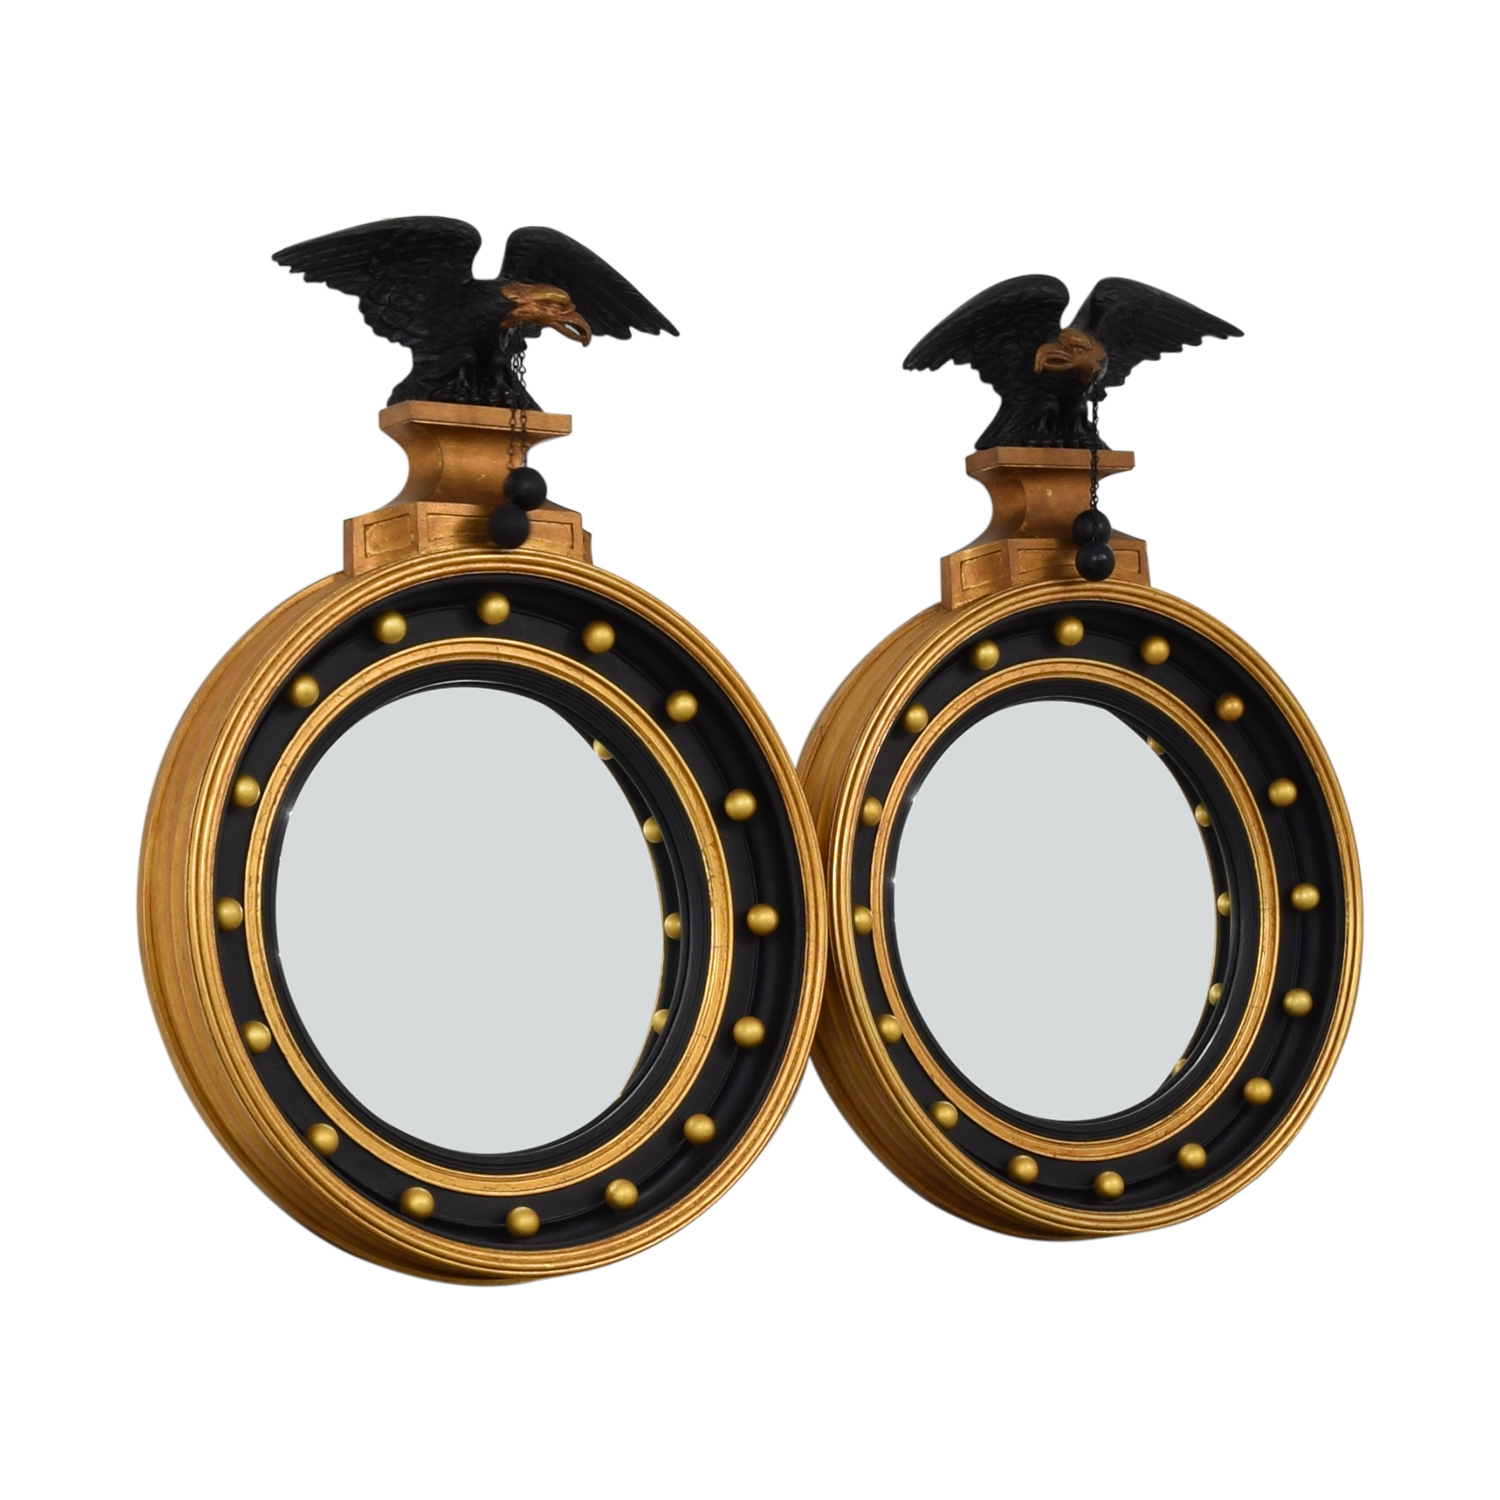 Federal Style Black and Gold Round Mirrors black/gold